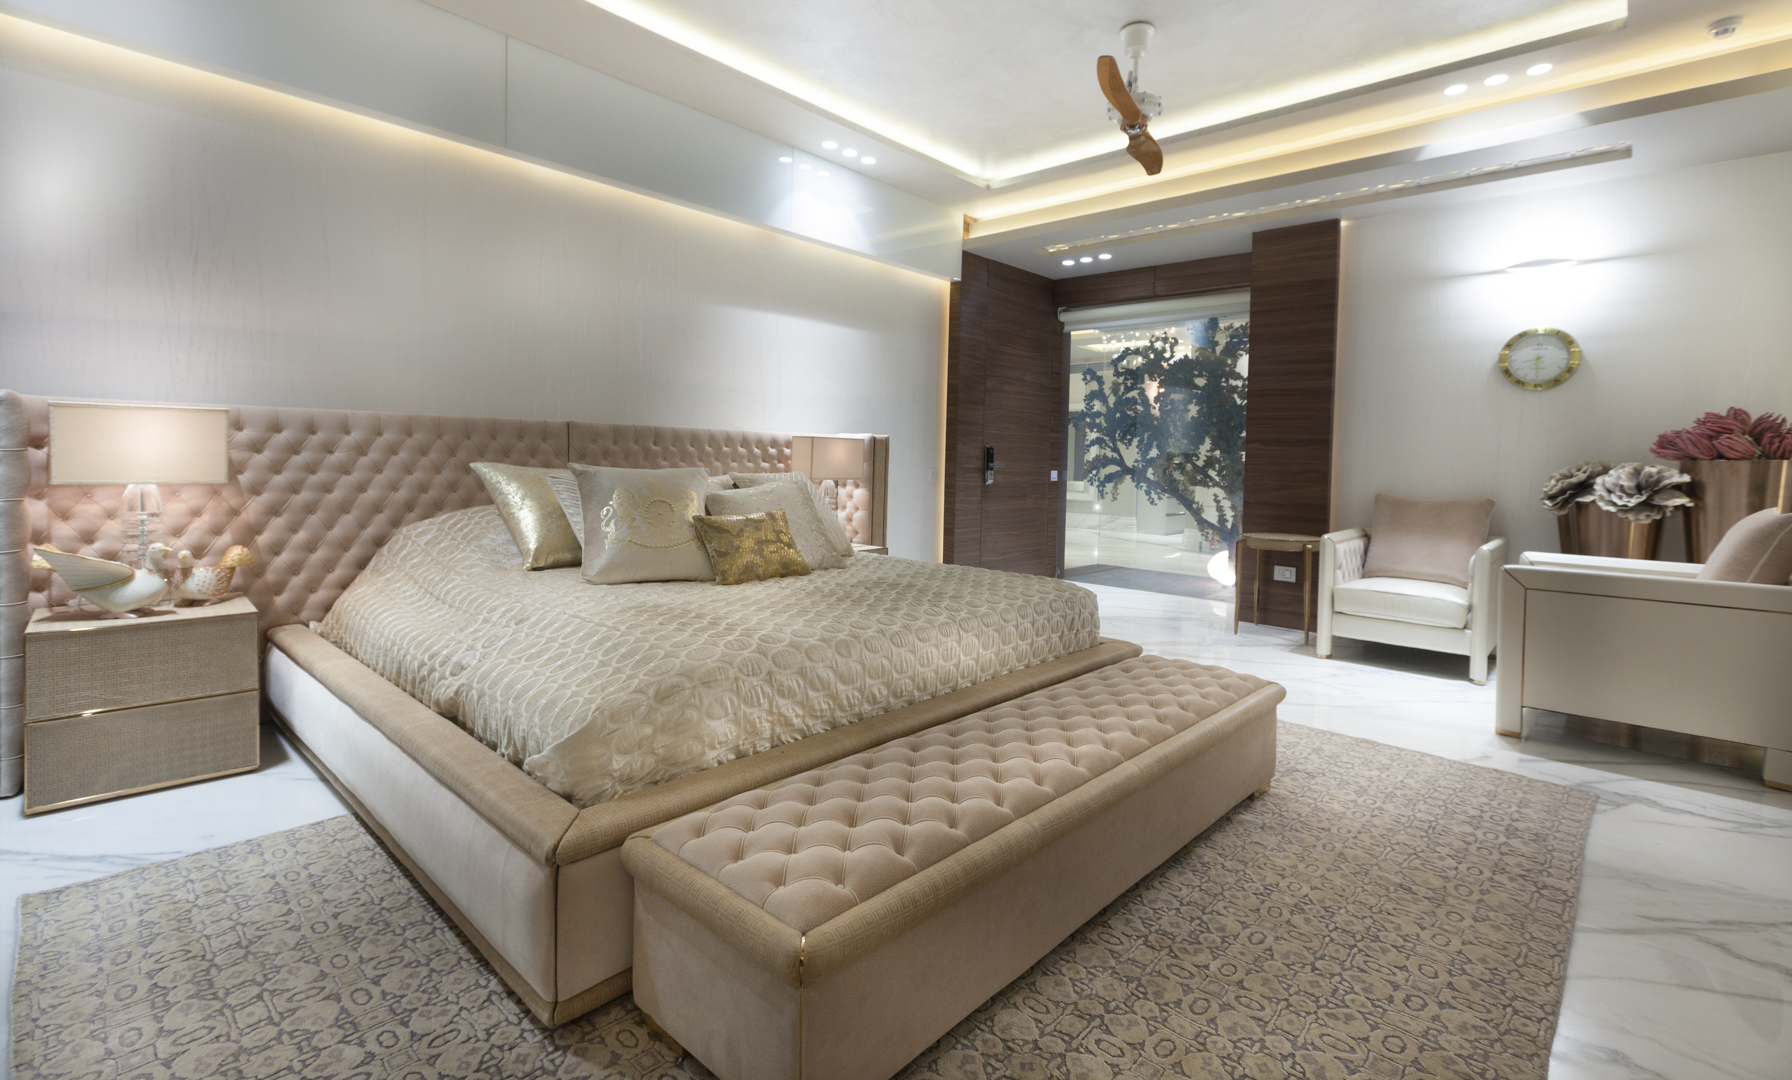 a beautiful bed room design by essentia environments - Beutiful Bed